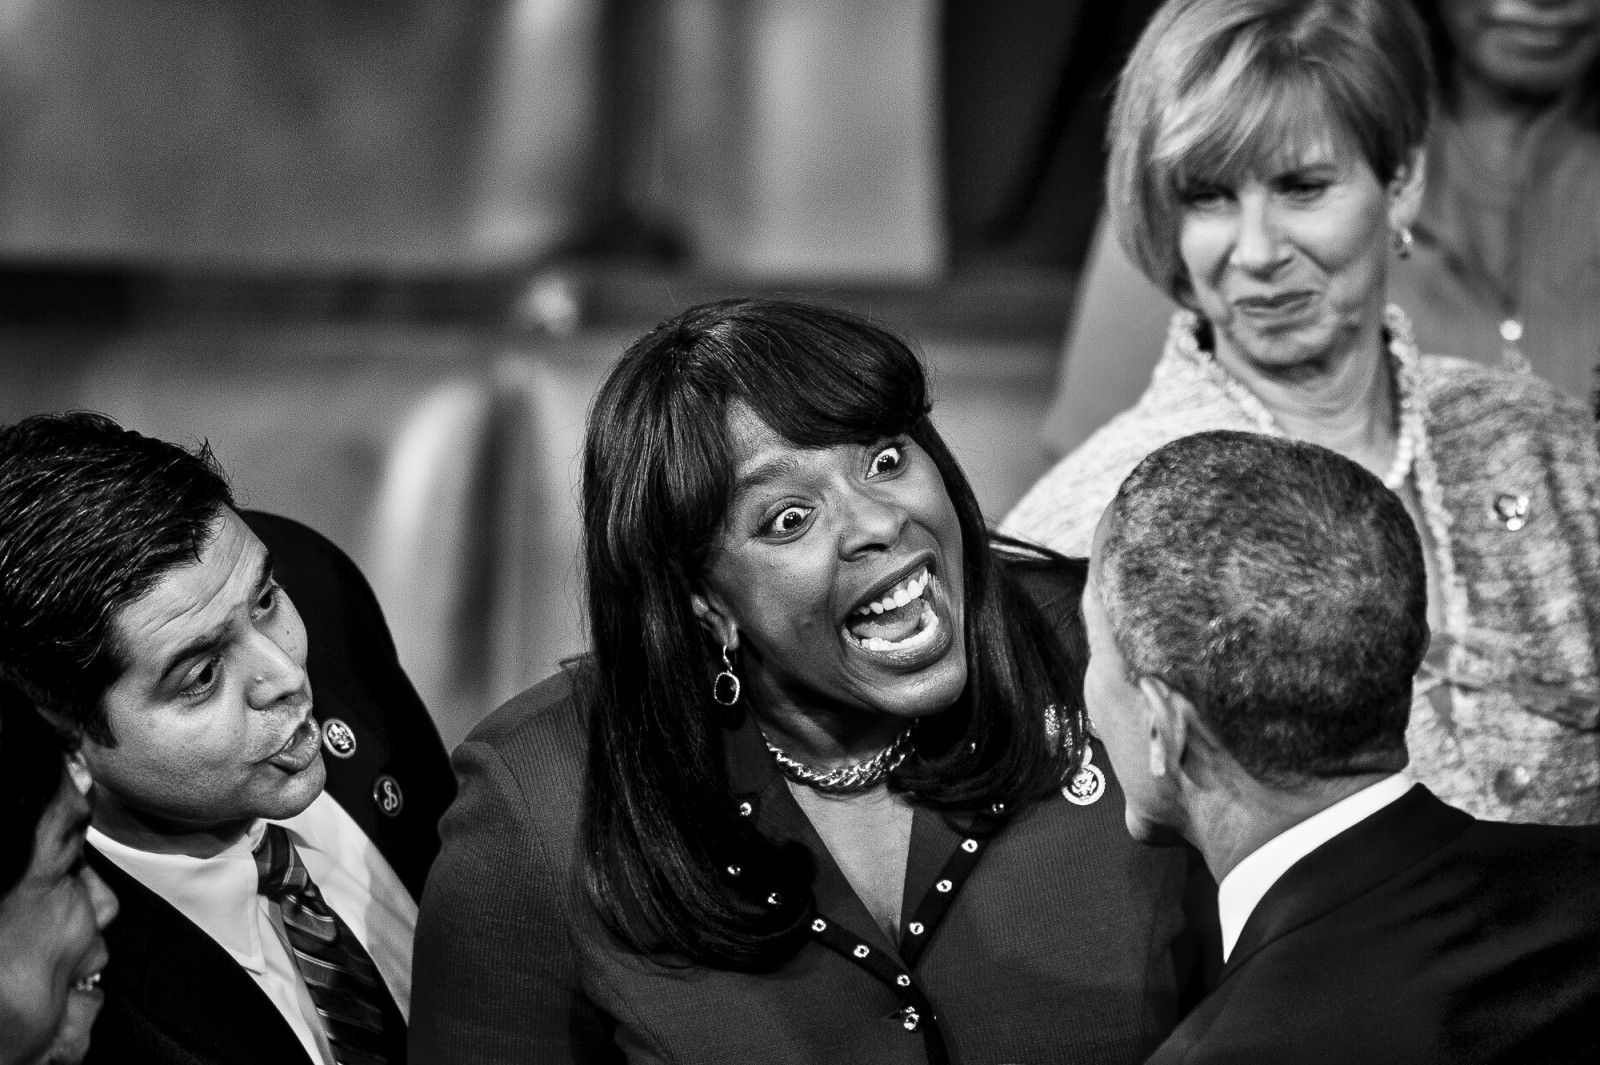 U.S. President Barack Obama is greeted Rep. Terri Sewell (D-AL) as he arrives to deliver the State of the Union address to a joint session of Congress at the Capitol in Washington, District of Columbia, U.S., on Tuesday, Jan. 20, 2015.